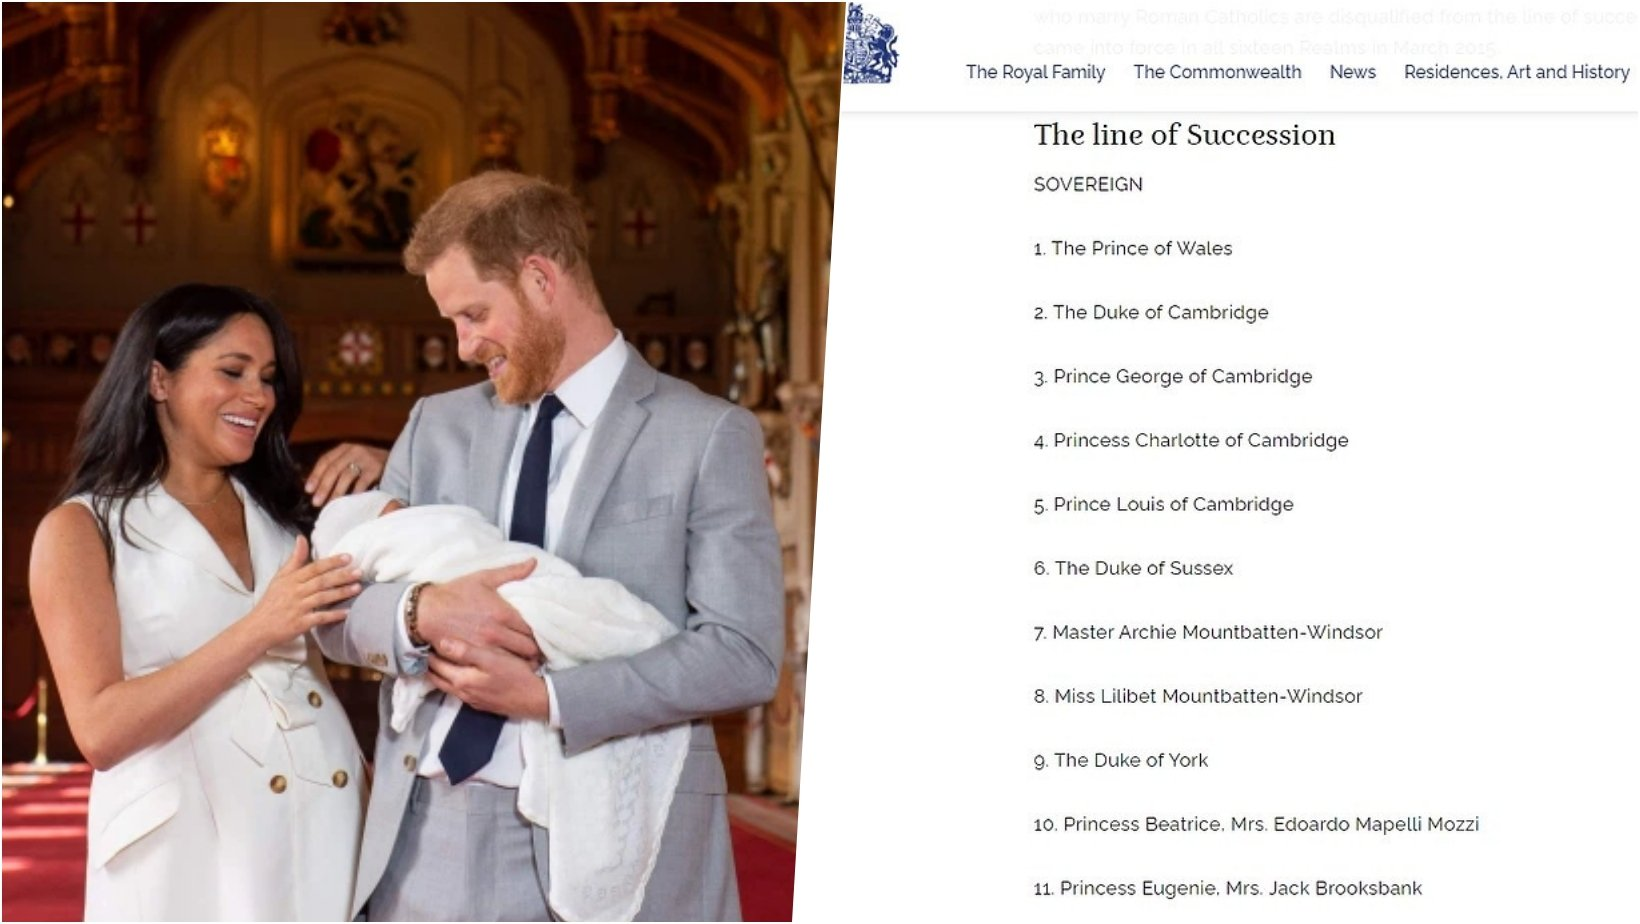 6 facebook cover 26.jpg?resize=1200,630 - Lilibet Diana Is FINALLY Listed On The Royal Family's Line Of Succession, Seven Weeks After Her Birth